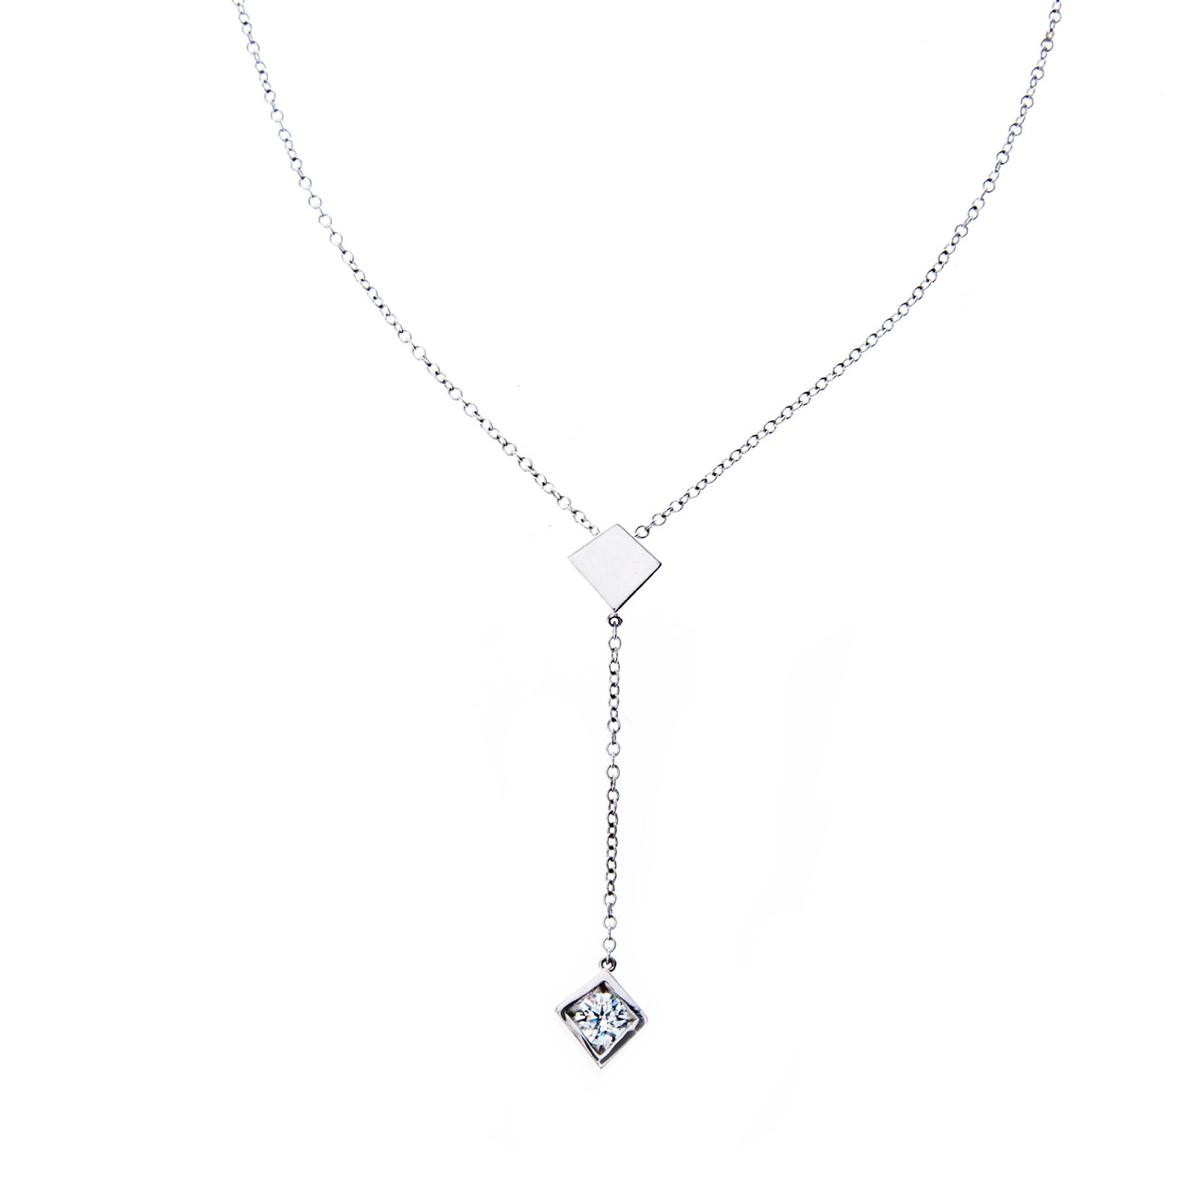 Vintage Tiffany & Co. Diamond Torque Necklace by Frank Gehry